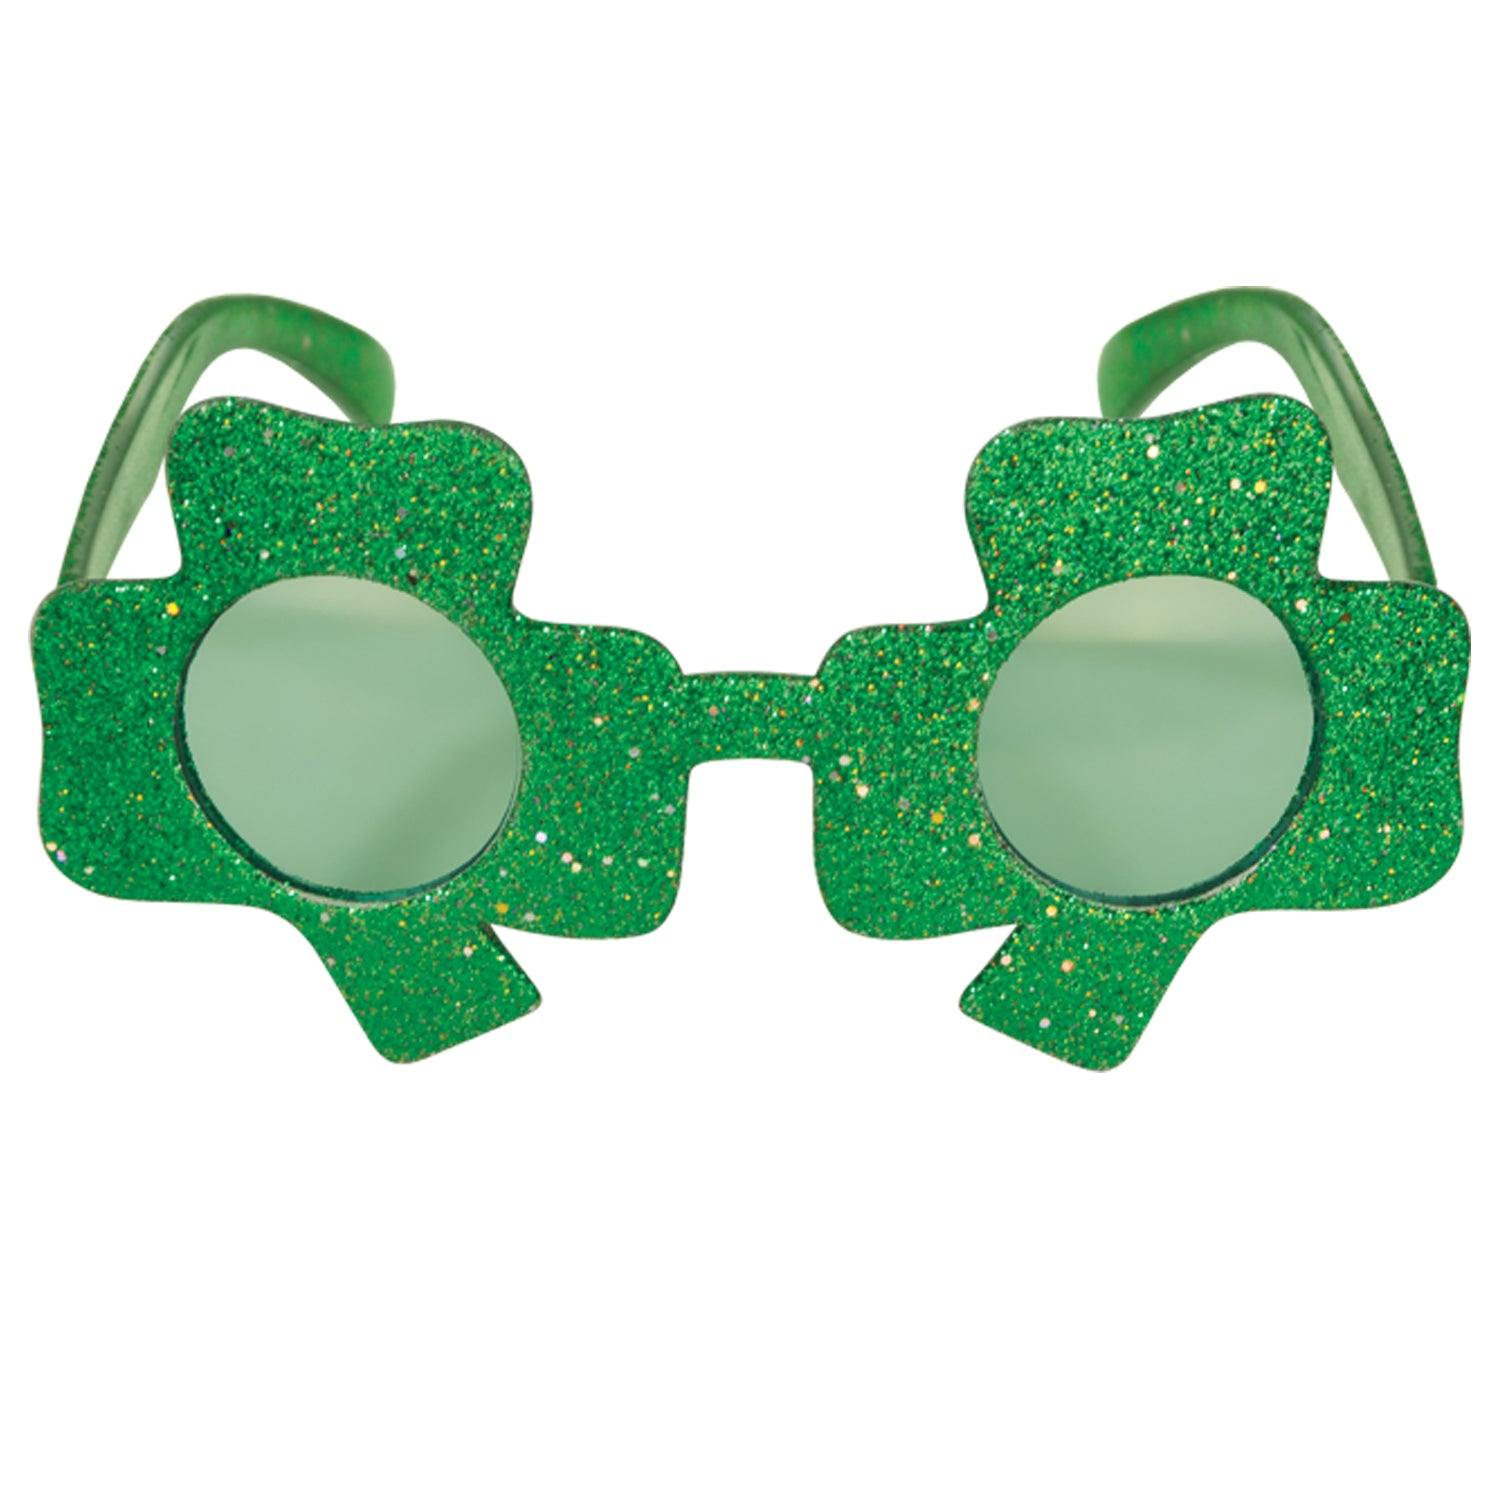 Glittered Shamrock Fanci-Frames by Beistle - St. Patricks Day Theme Decorations